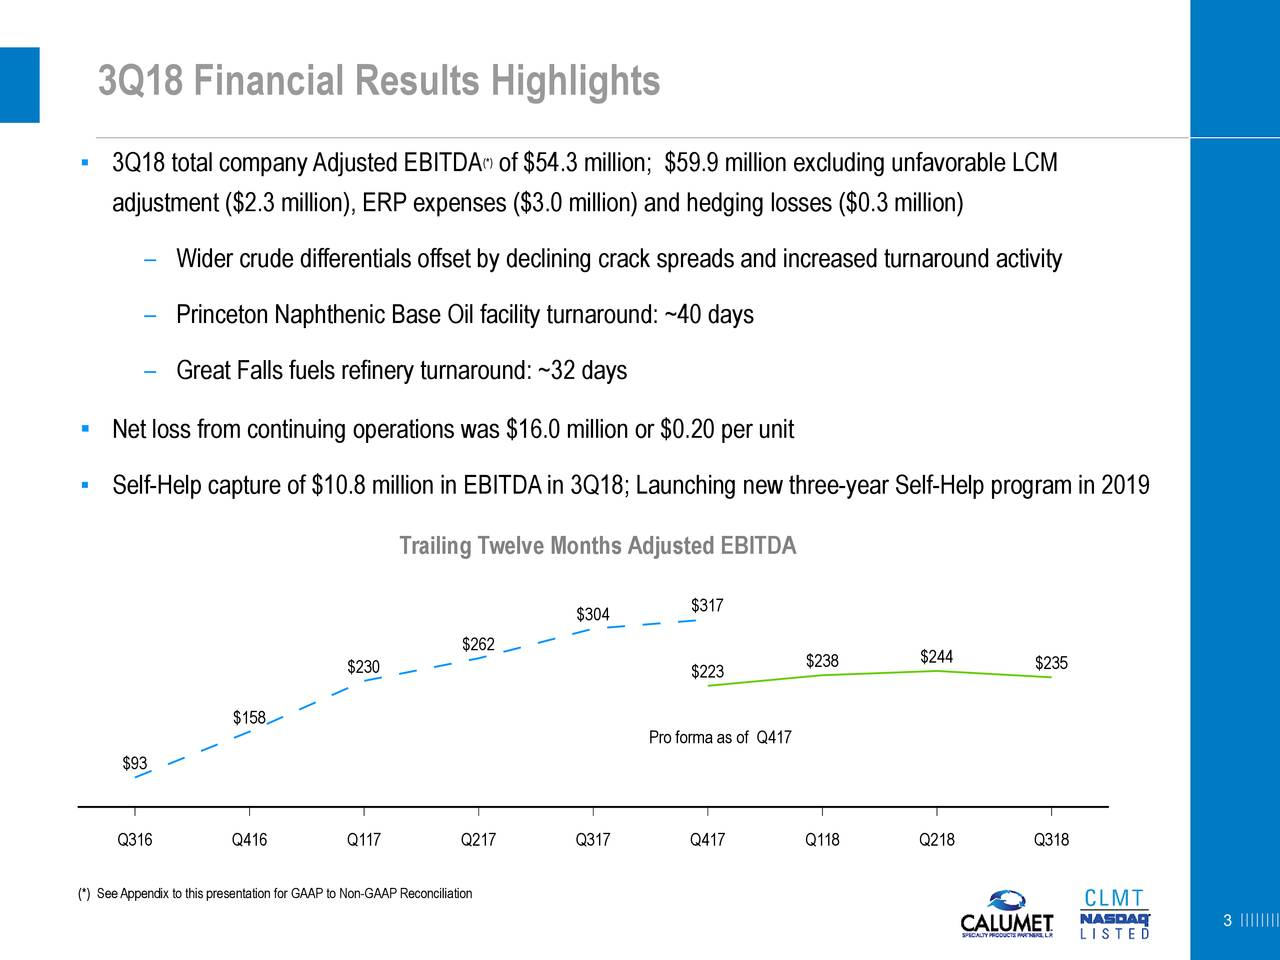 ▪ 3Q18 total companyAdjusted EBITDA of $54.3 million; $59.9 million excluding unfavorable LCM adjustment ($2.3 million), ERP expenses ($3.0 million) and hedging losses ($0.3 million) – Wider crude differentials offset by declining crack spreads and increased turnaround activity – Princeton Naphthenic Base Oil facility turnaround: ~40 days – Great Falls fuels refinery turnaround: ~32 days ▪ Net loss from continuing operations was $16.0 million or $0.20 per unit ▪ Self-Help capture of $10.8 million in EBITDAin 3Q18; Launching new three-year Self-Help program in 2019 Trailing Twelve Months Adjusted EBITDA $317 $304 $262 $230 $223 $238 $244 $235 $158 Pro forma as of Q417 $93 Q316 Q416 Q117 Q217 Q317 Q417 Q118 Q218 Q318 (*) SeeAppendix to this presentation for GAAP to Non-GAAP Reconciliation 3